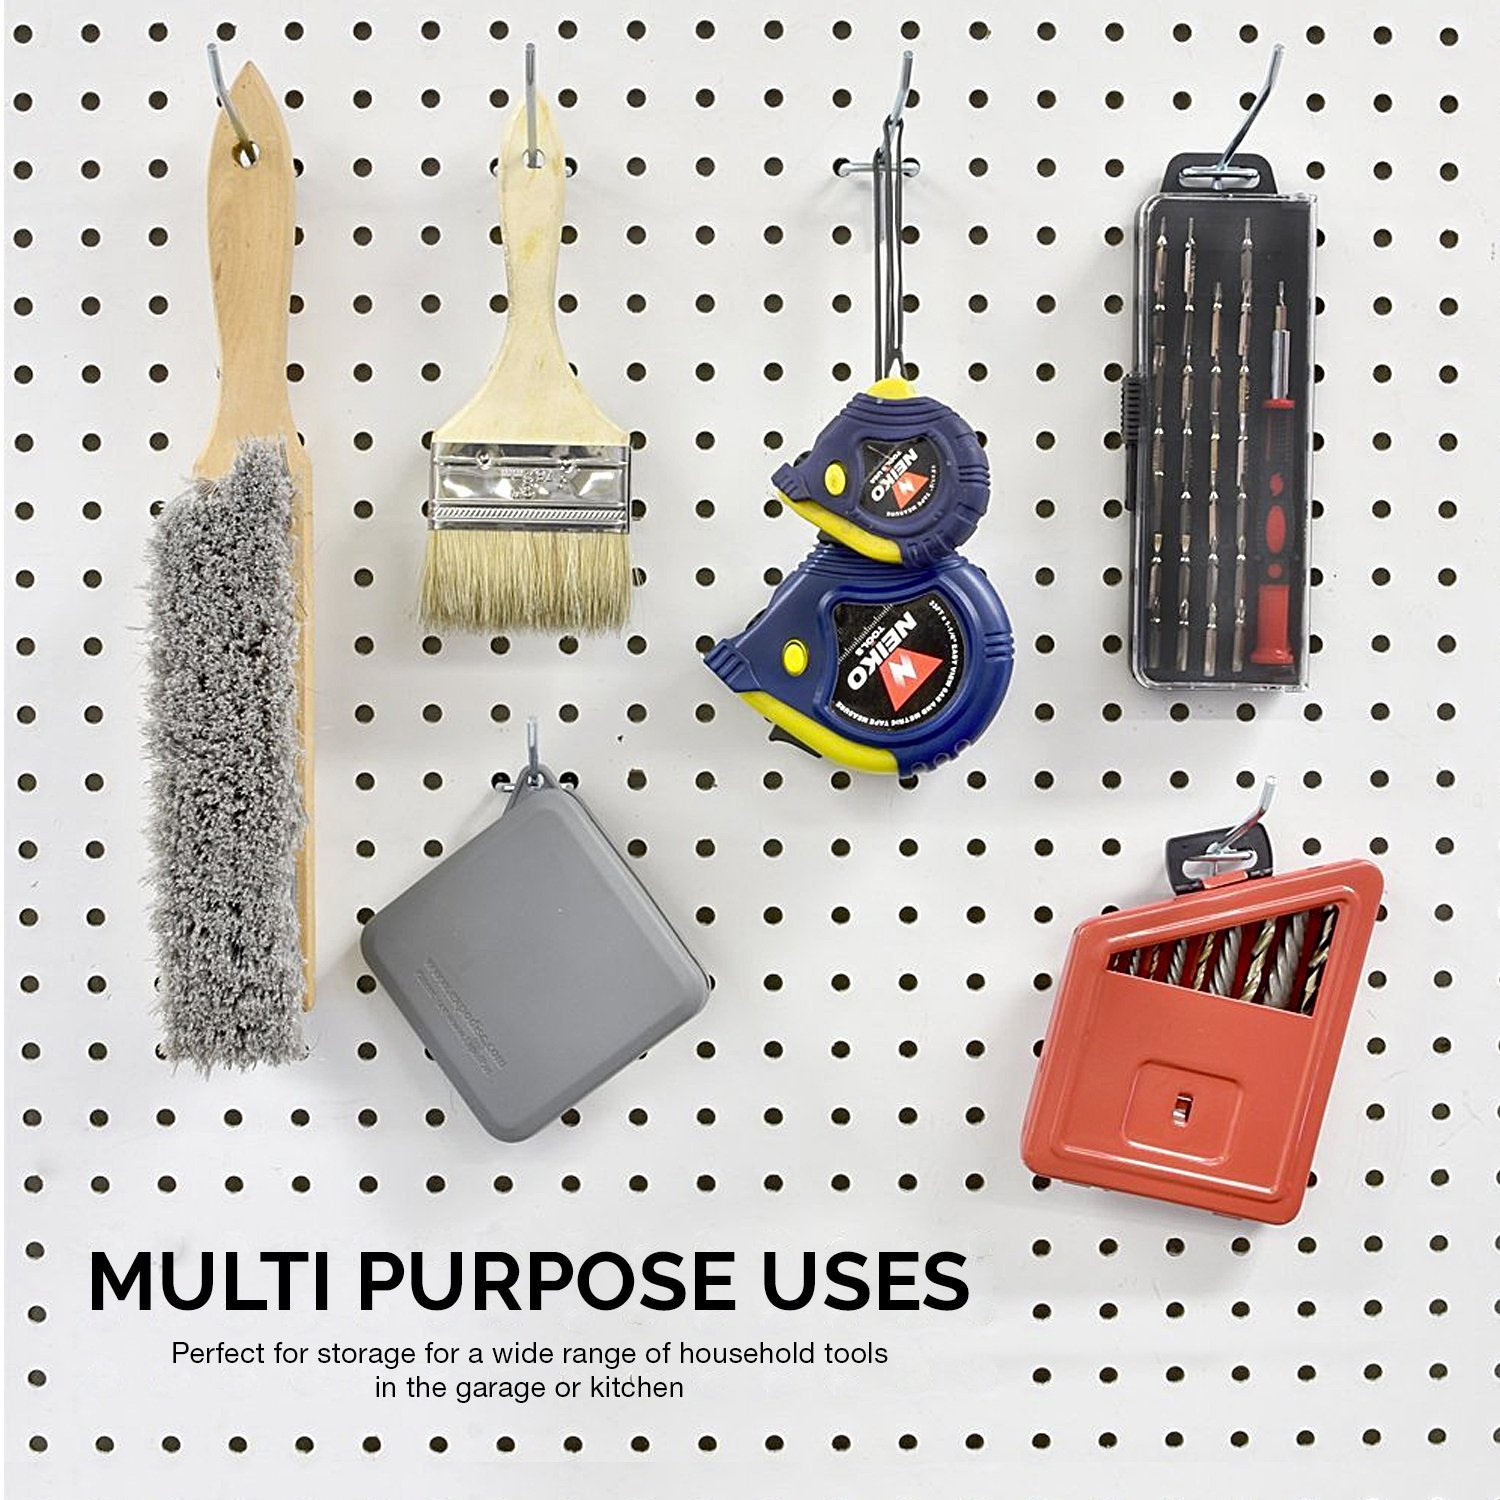 50-Piece Value Pack Neiko 53100A 4-Inch Pegboard Hooks and Organizer Assortment